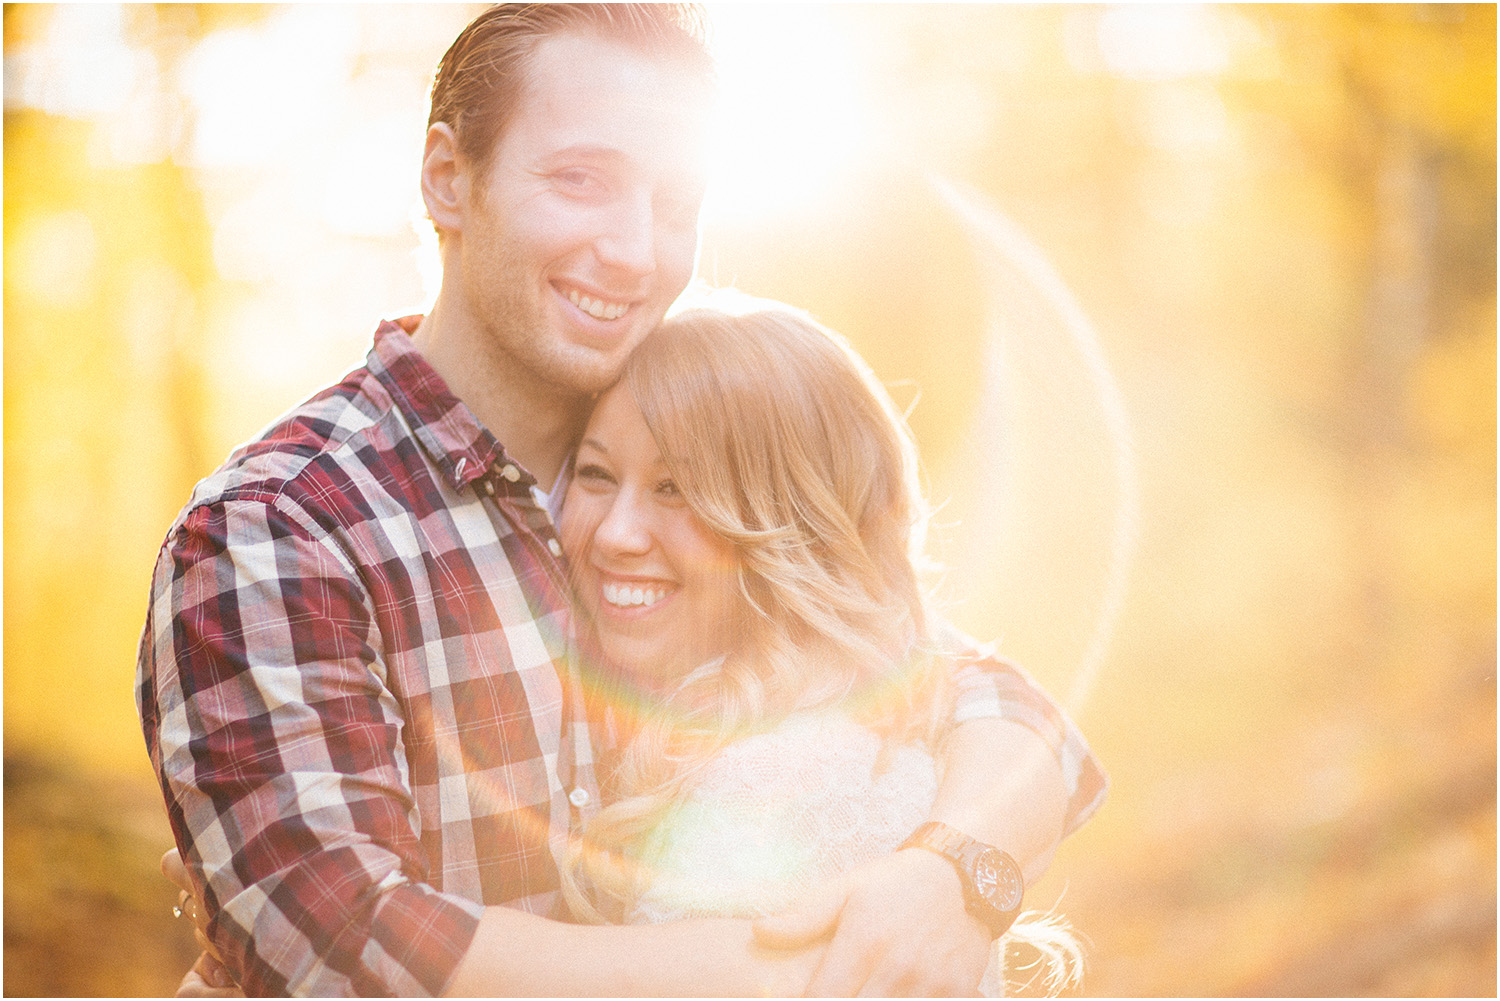 Such cool lens flare! - Cleveland Wedding Photographer